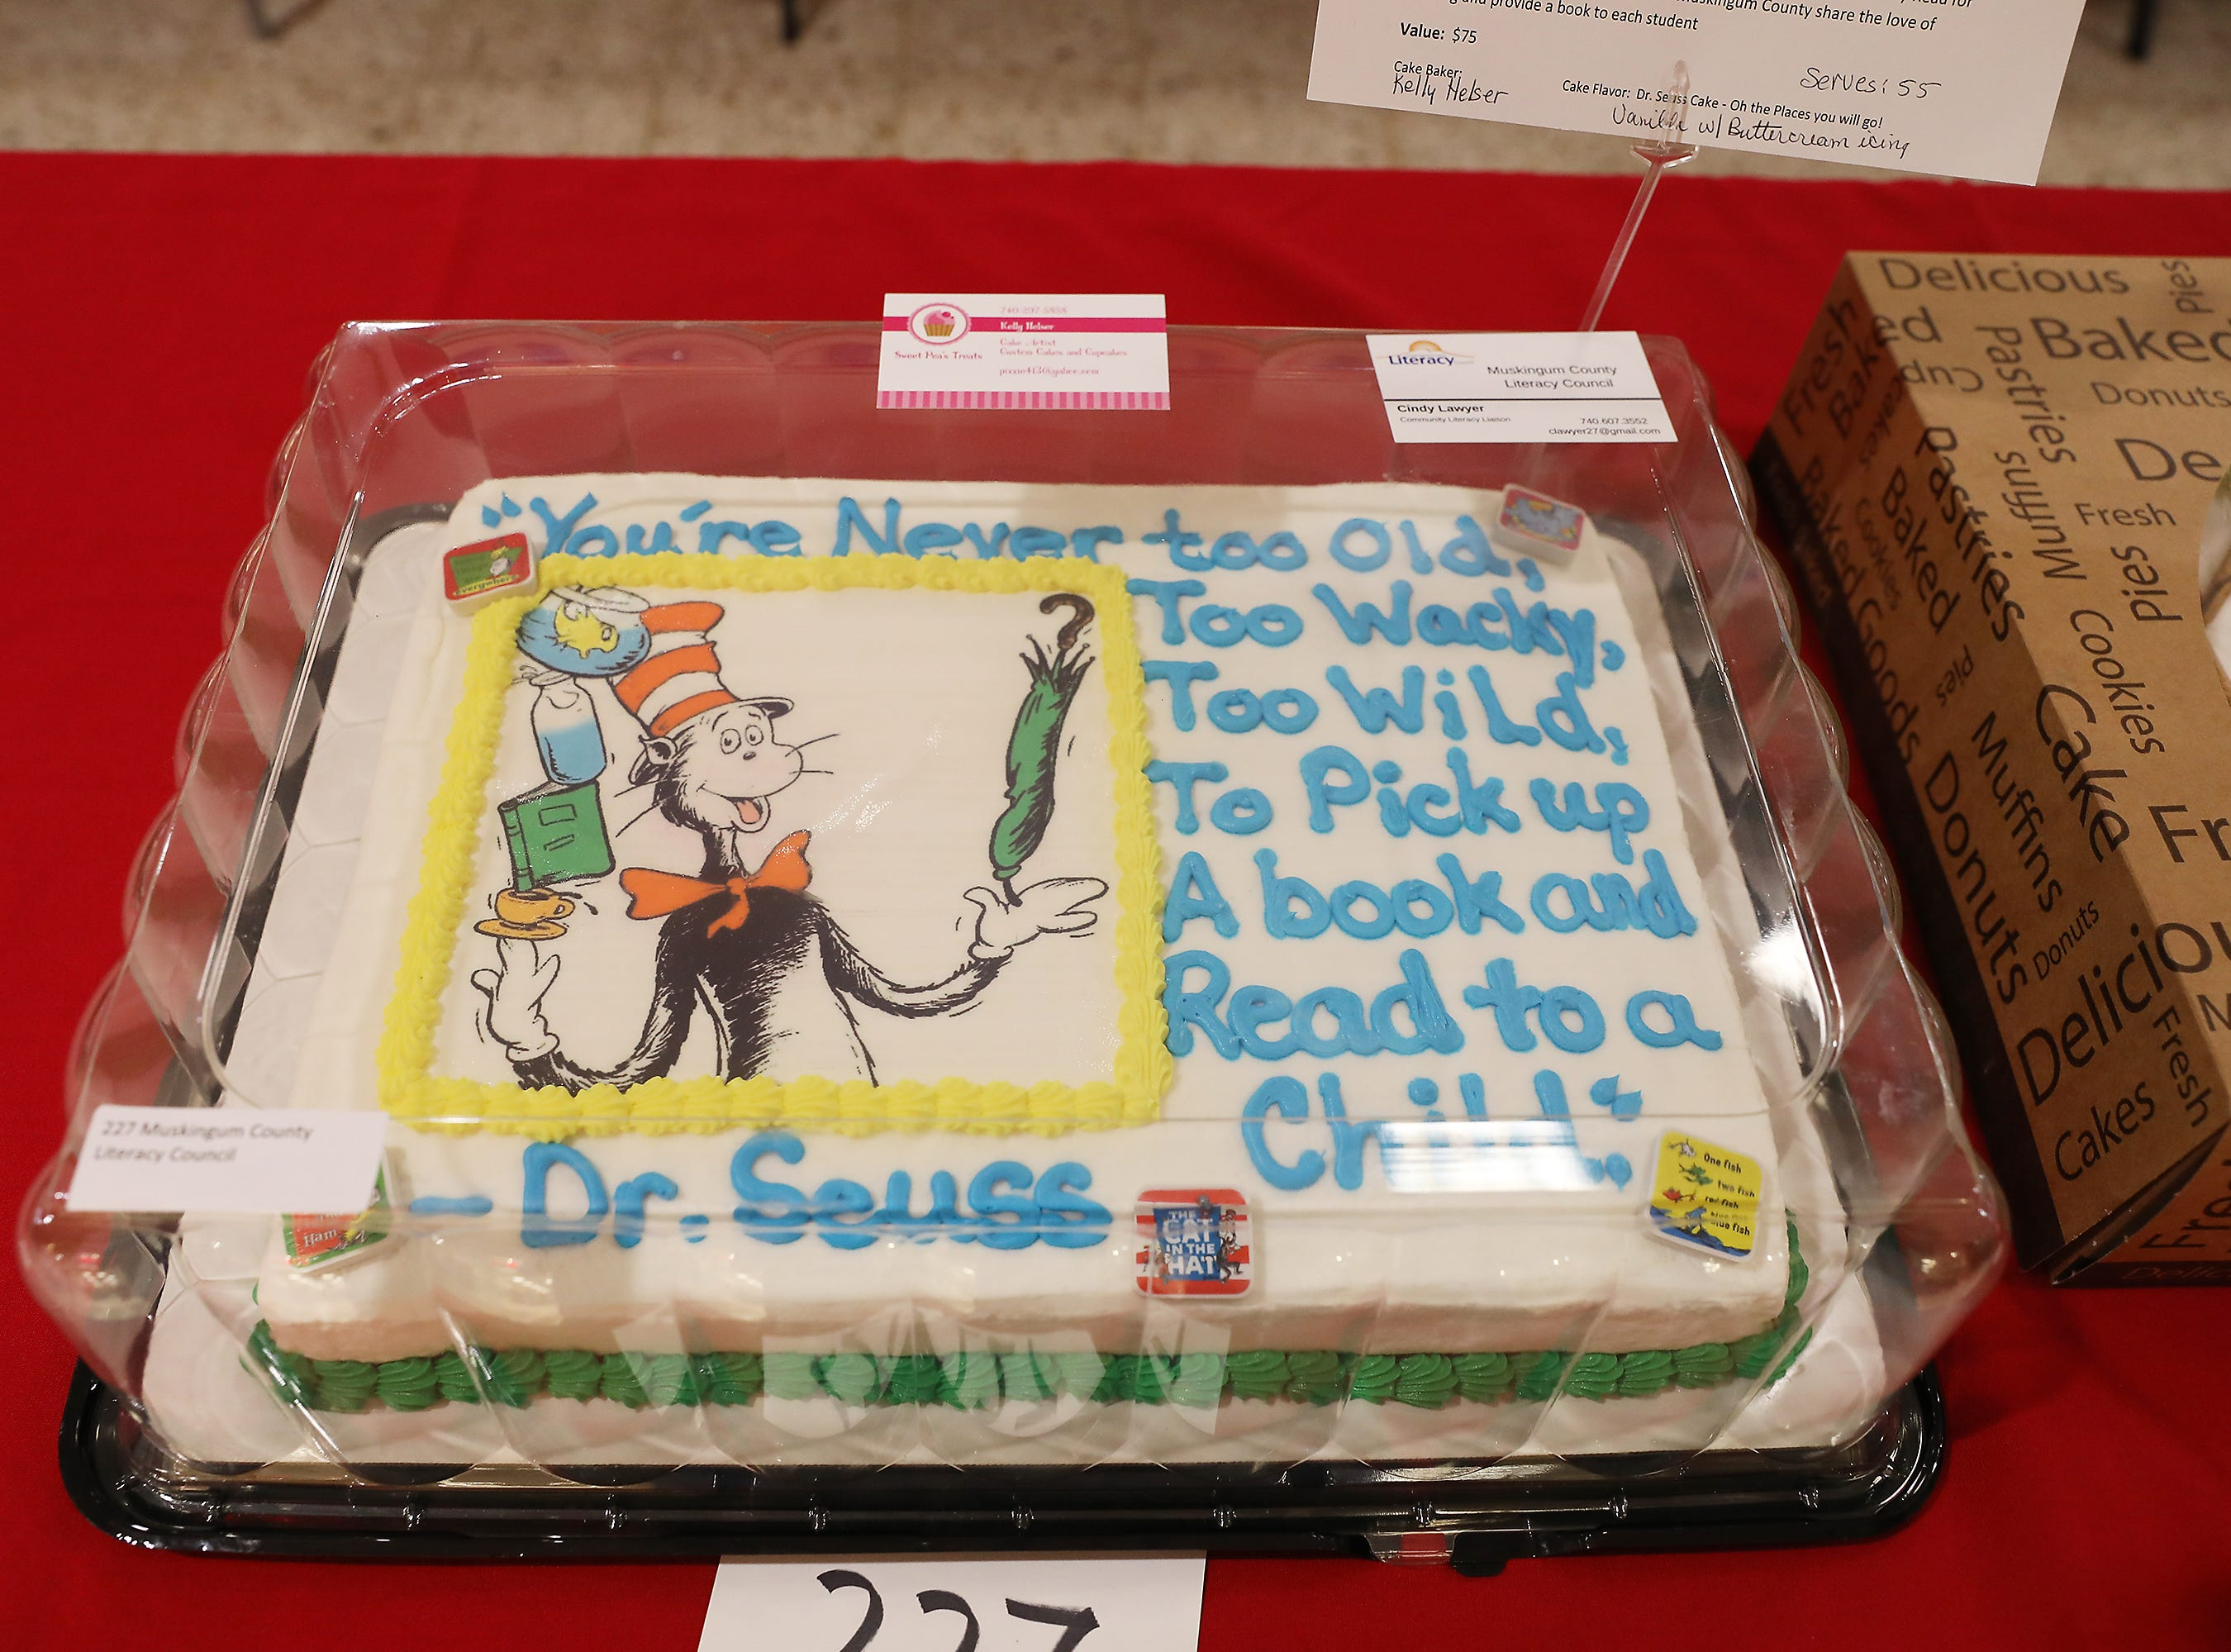 9 A.M. Friday cake 227 Muskingum County Literacy Council - children's books, Bard the Bunny read; $75